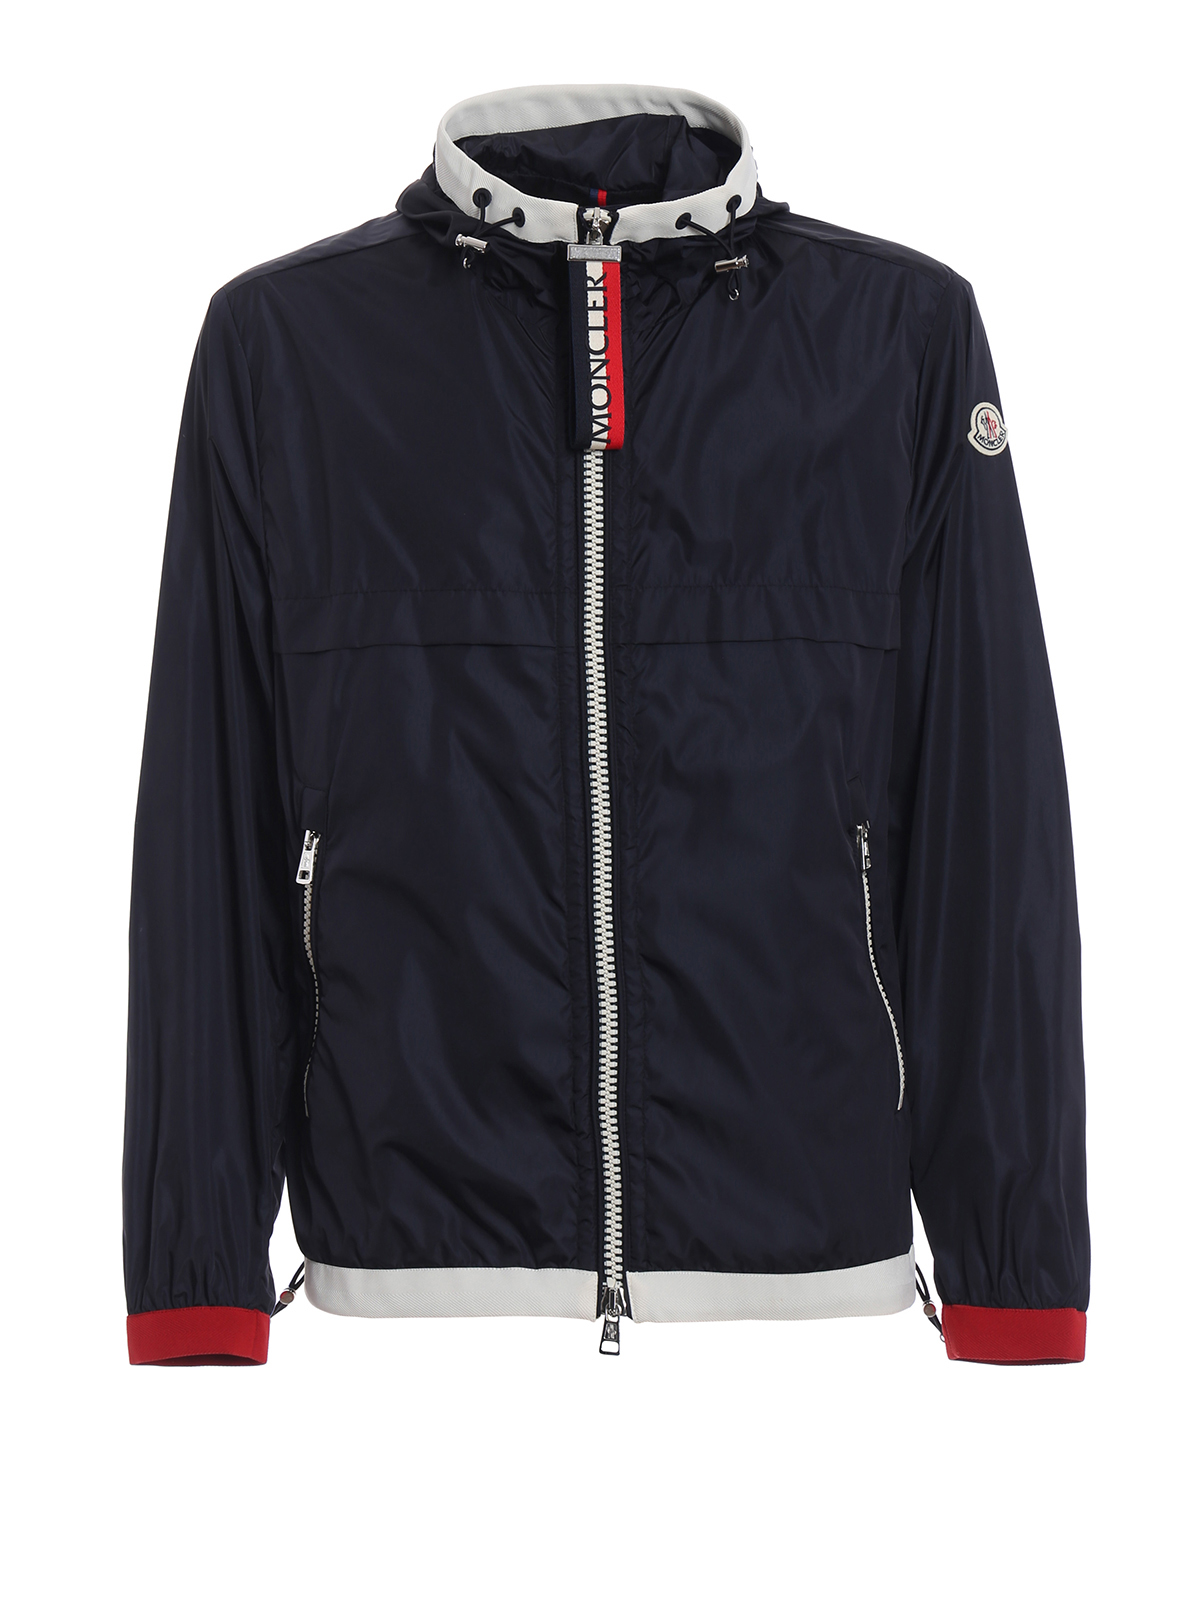 Giacca scuro Moncler D1 casual giacche blu antivento Alshat FdRRqwAS